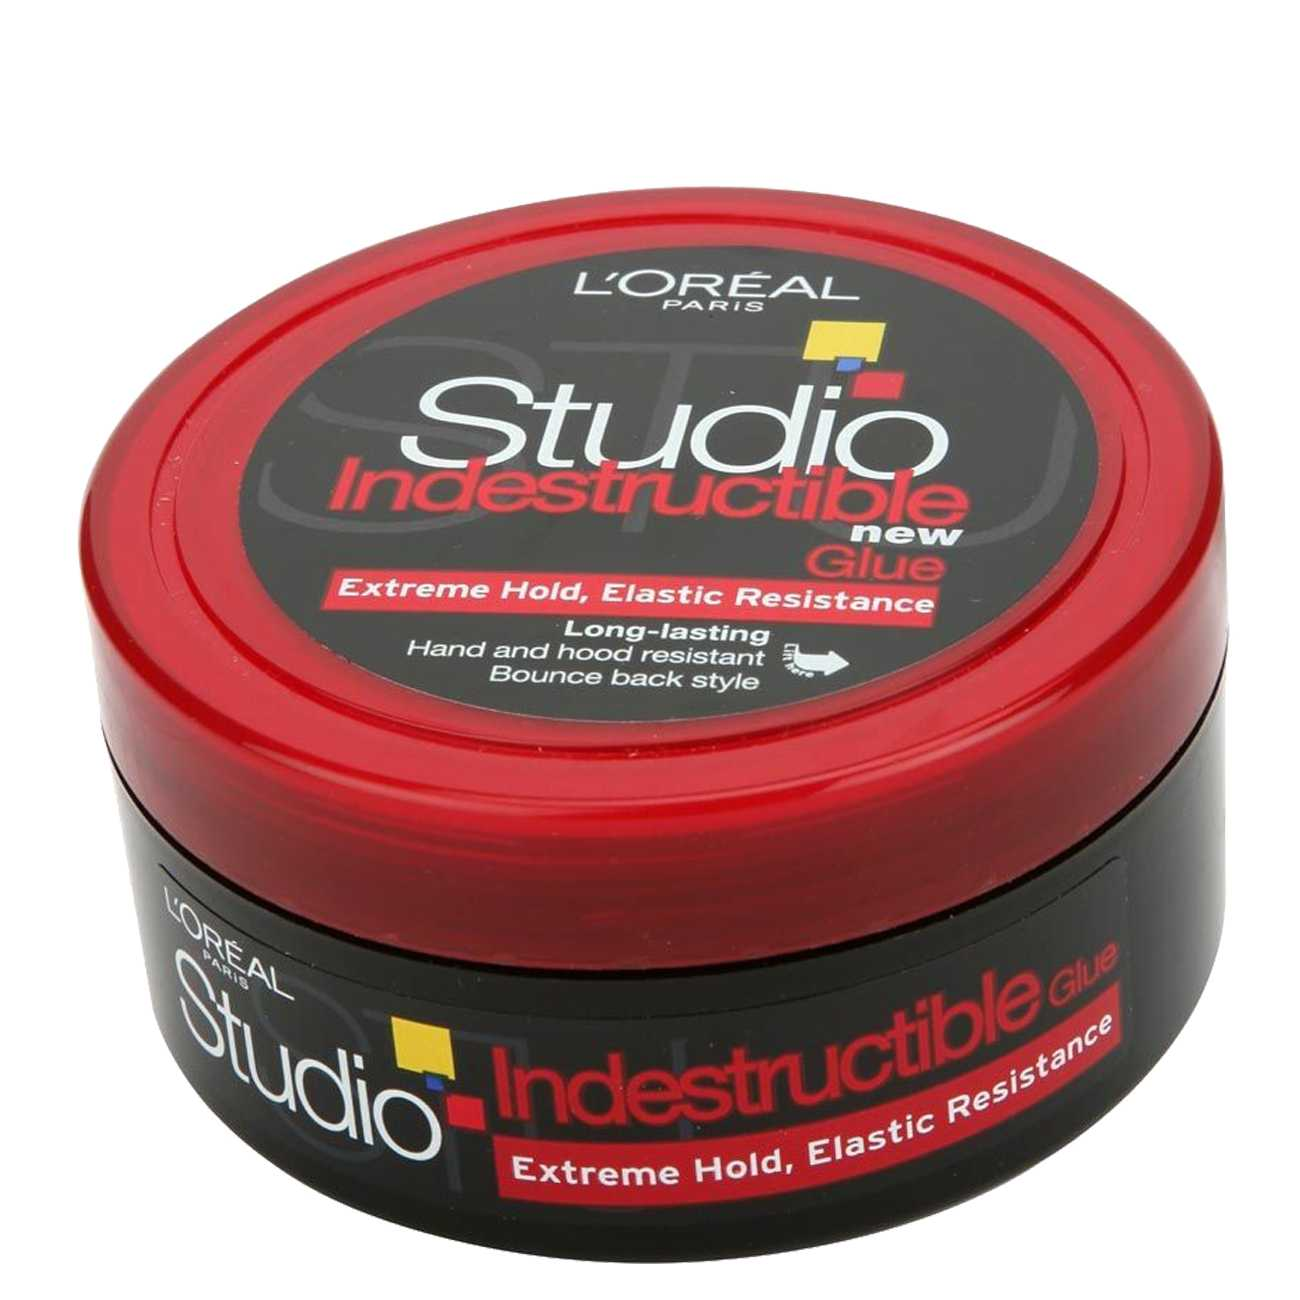 STUDIO LINE INDESTRUCTIBLE GLUE 150 ML imagine produs